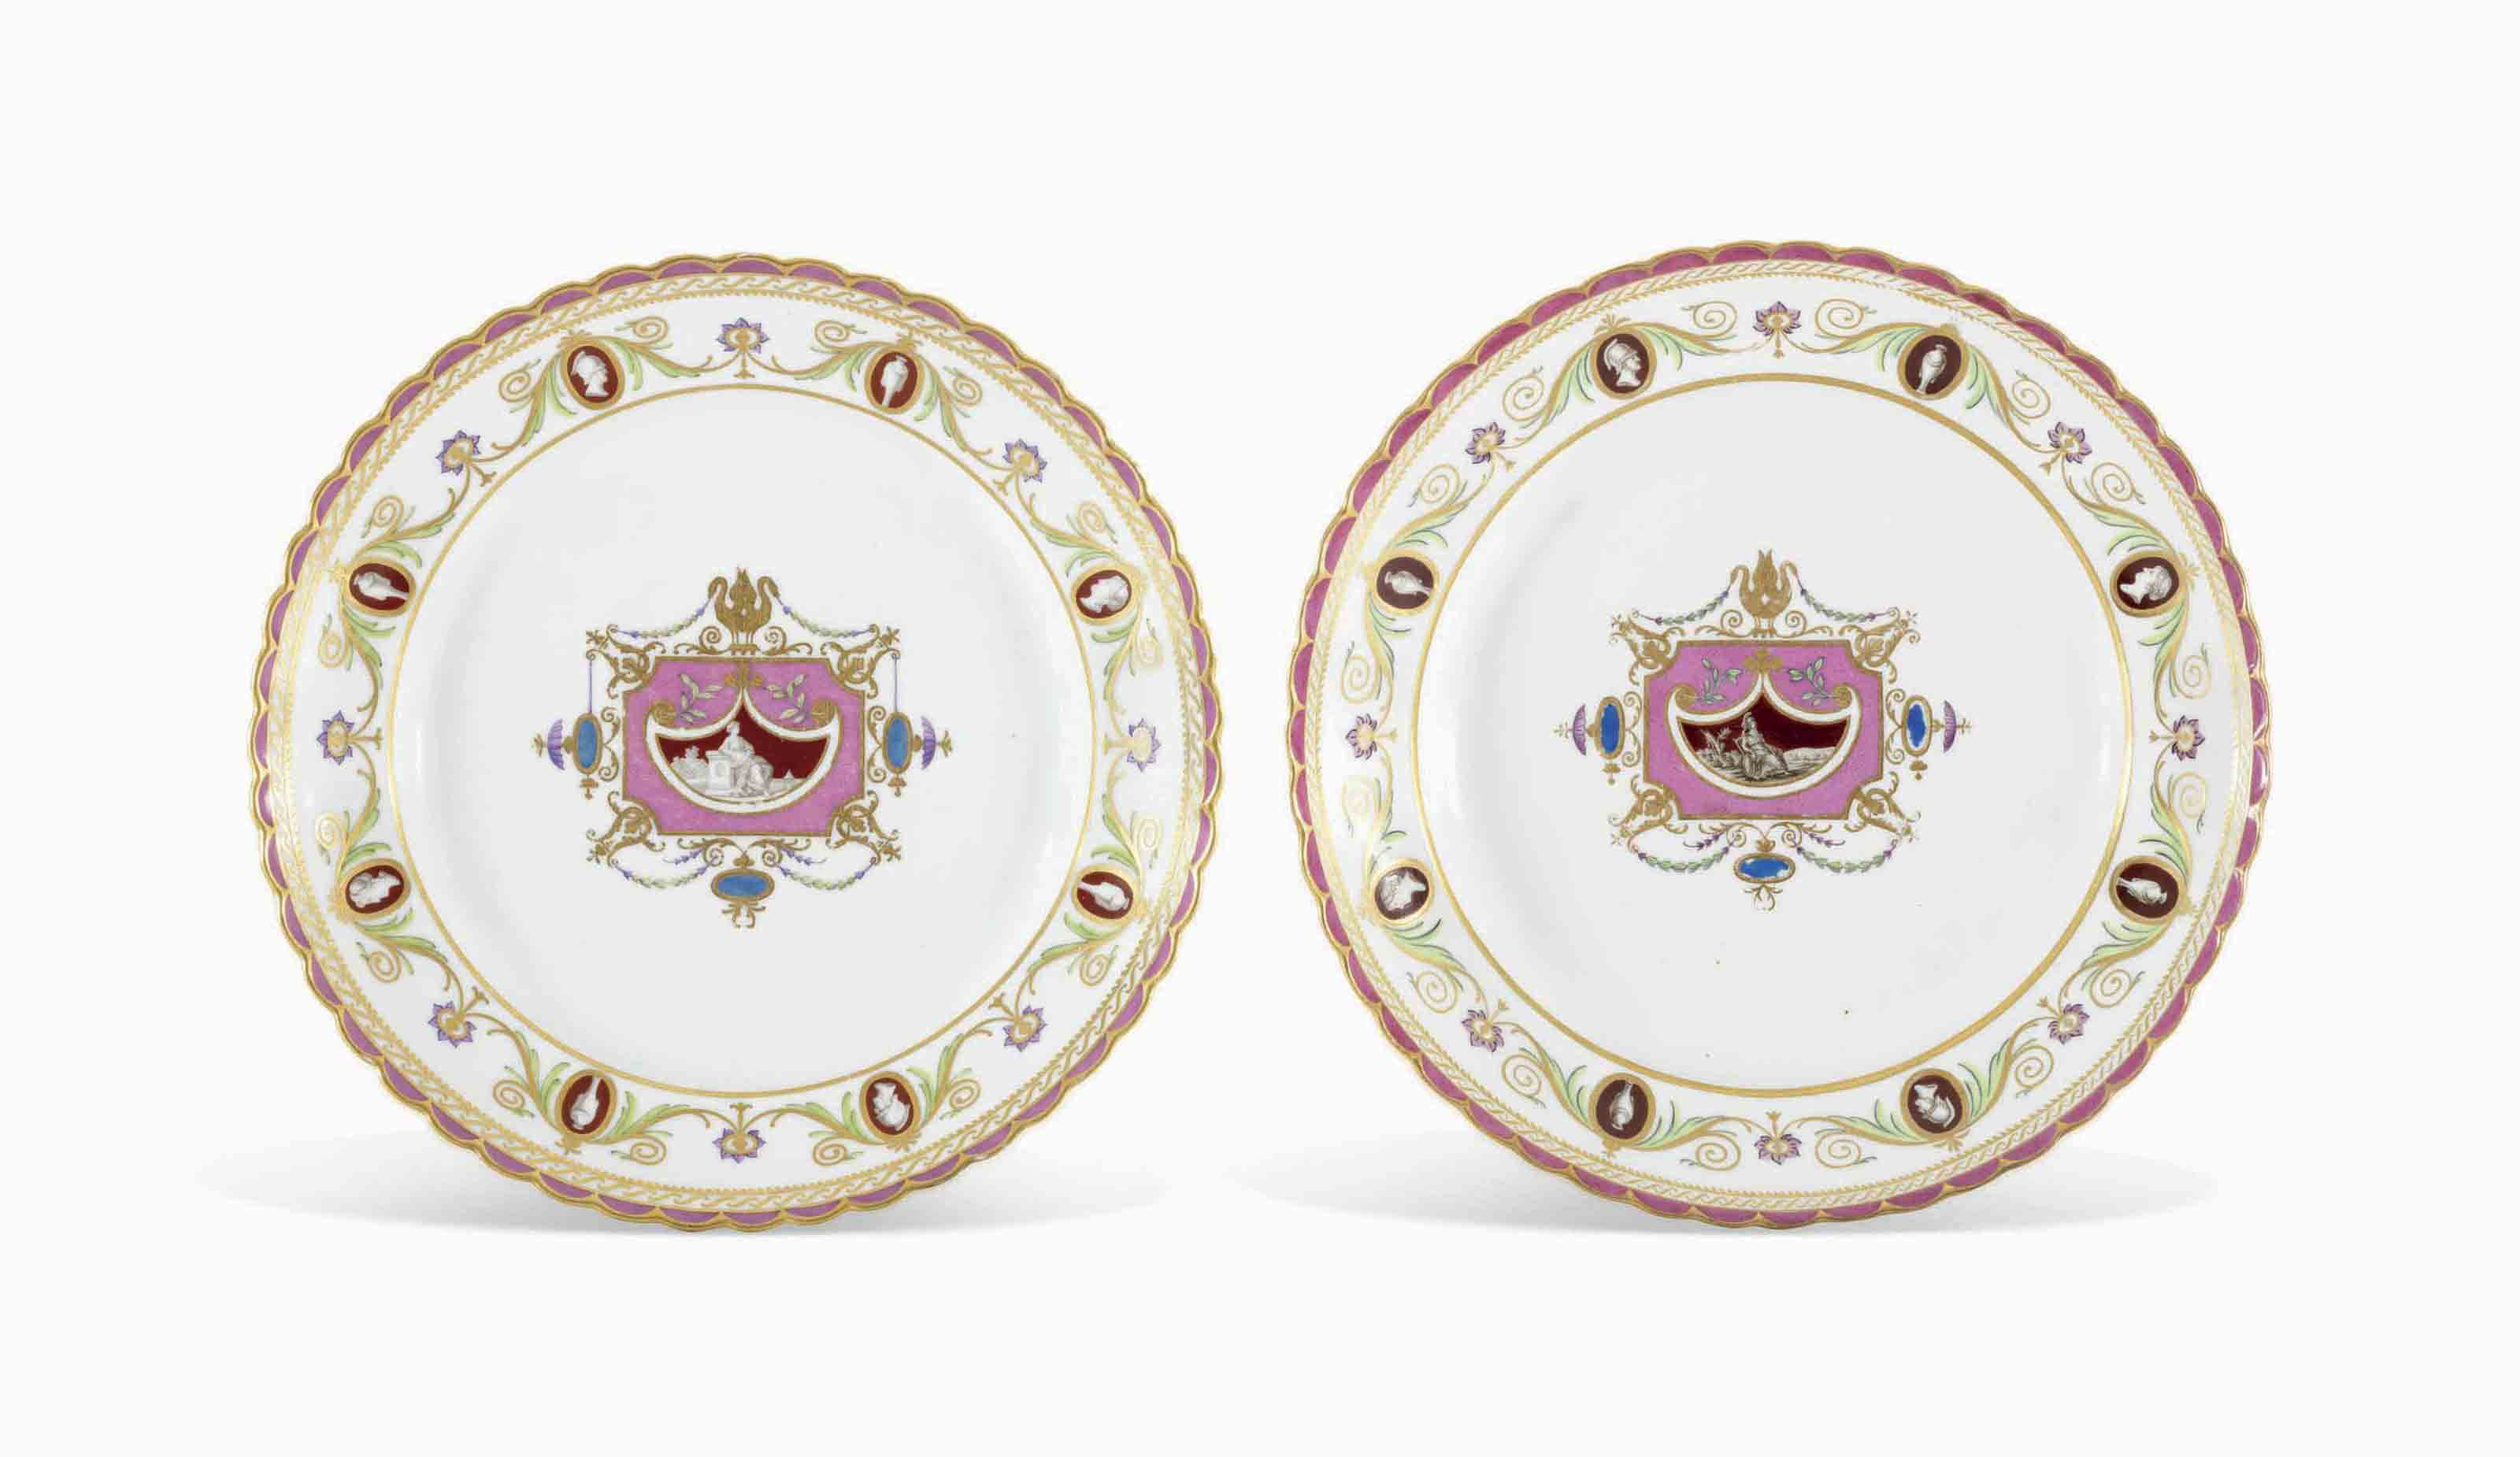 TWO PORCELAIN PLATES FROM THE ARABESQUE SERVICE